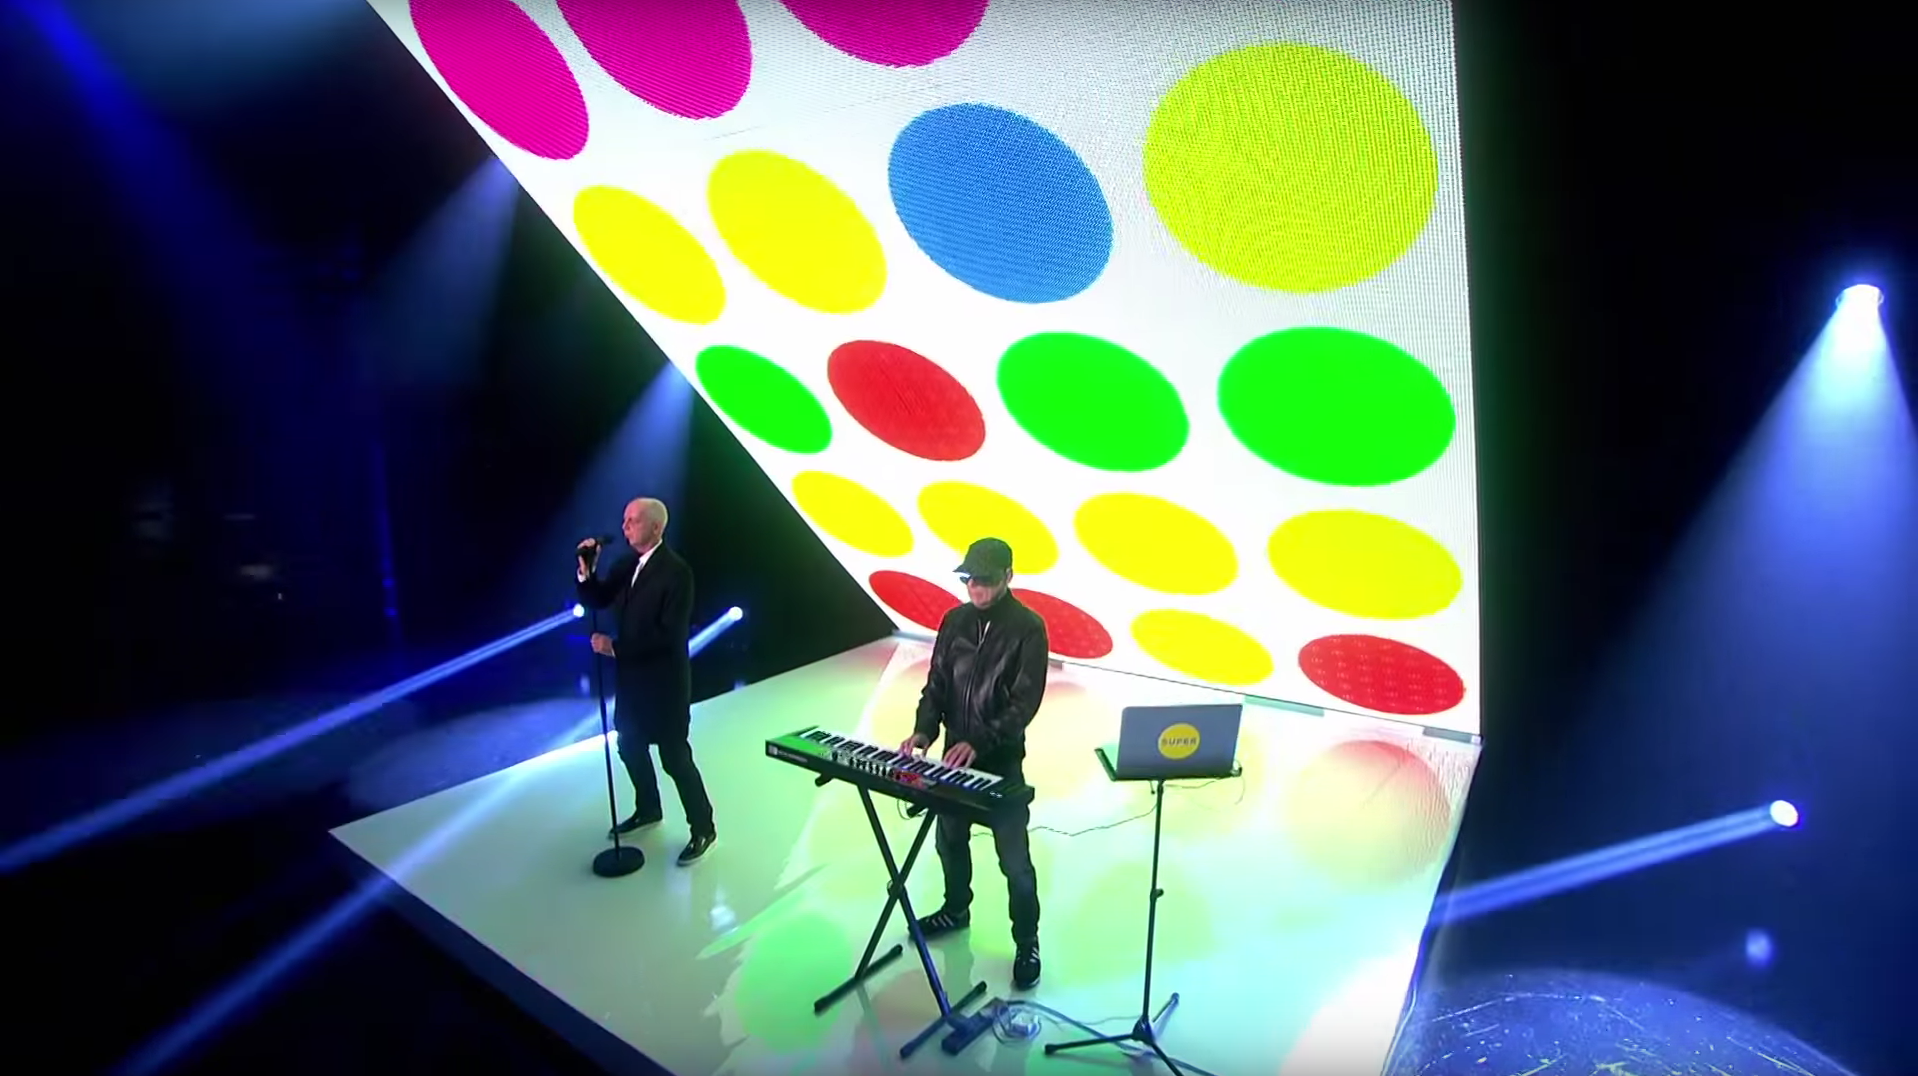 Copy of Pet Shop Boys • The Graham Norton Show 2016